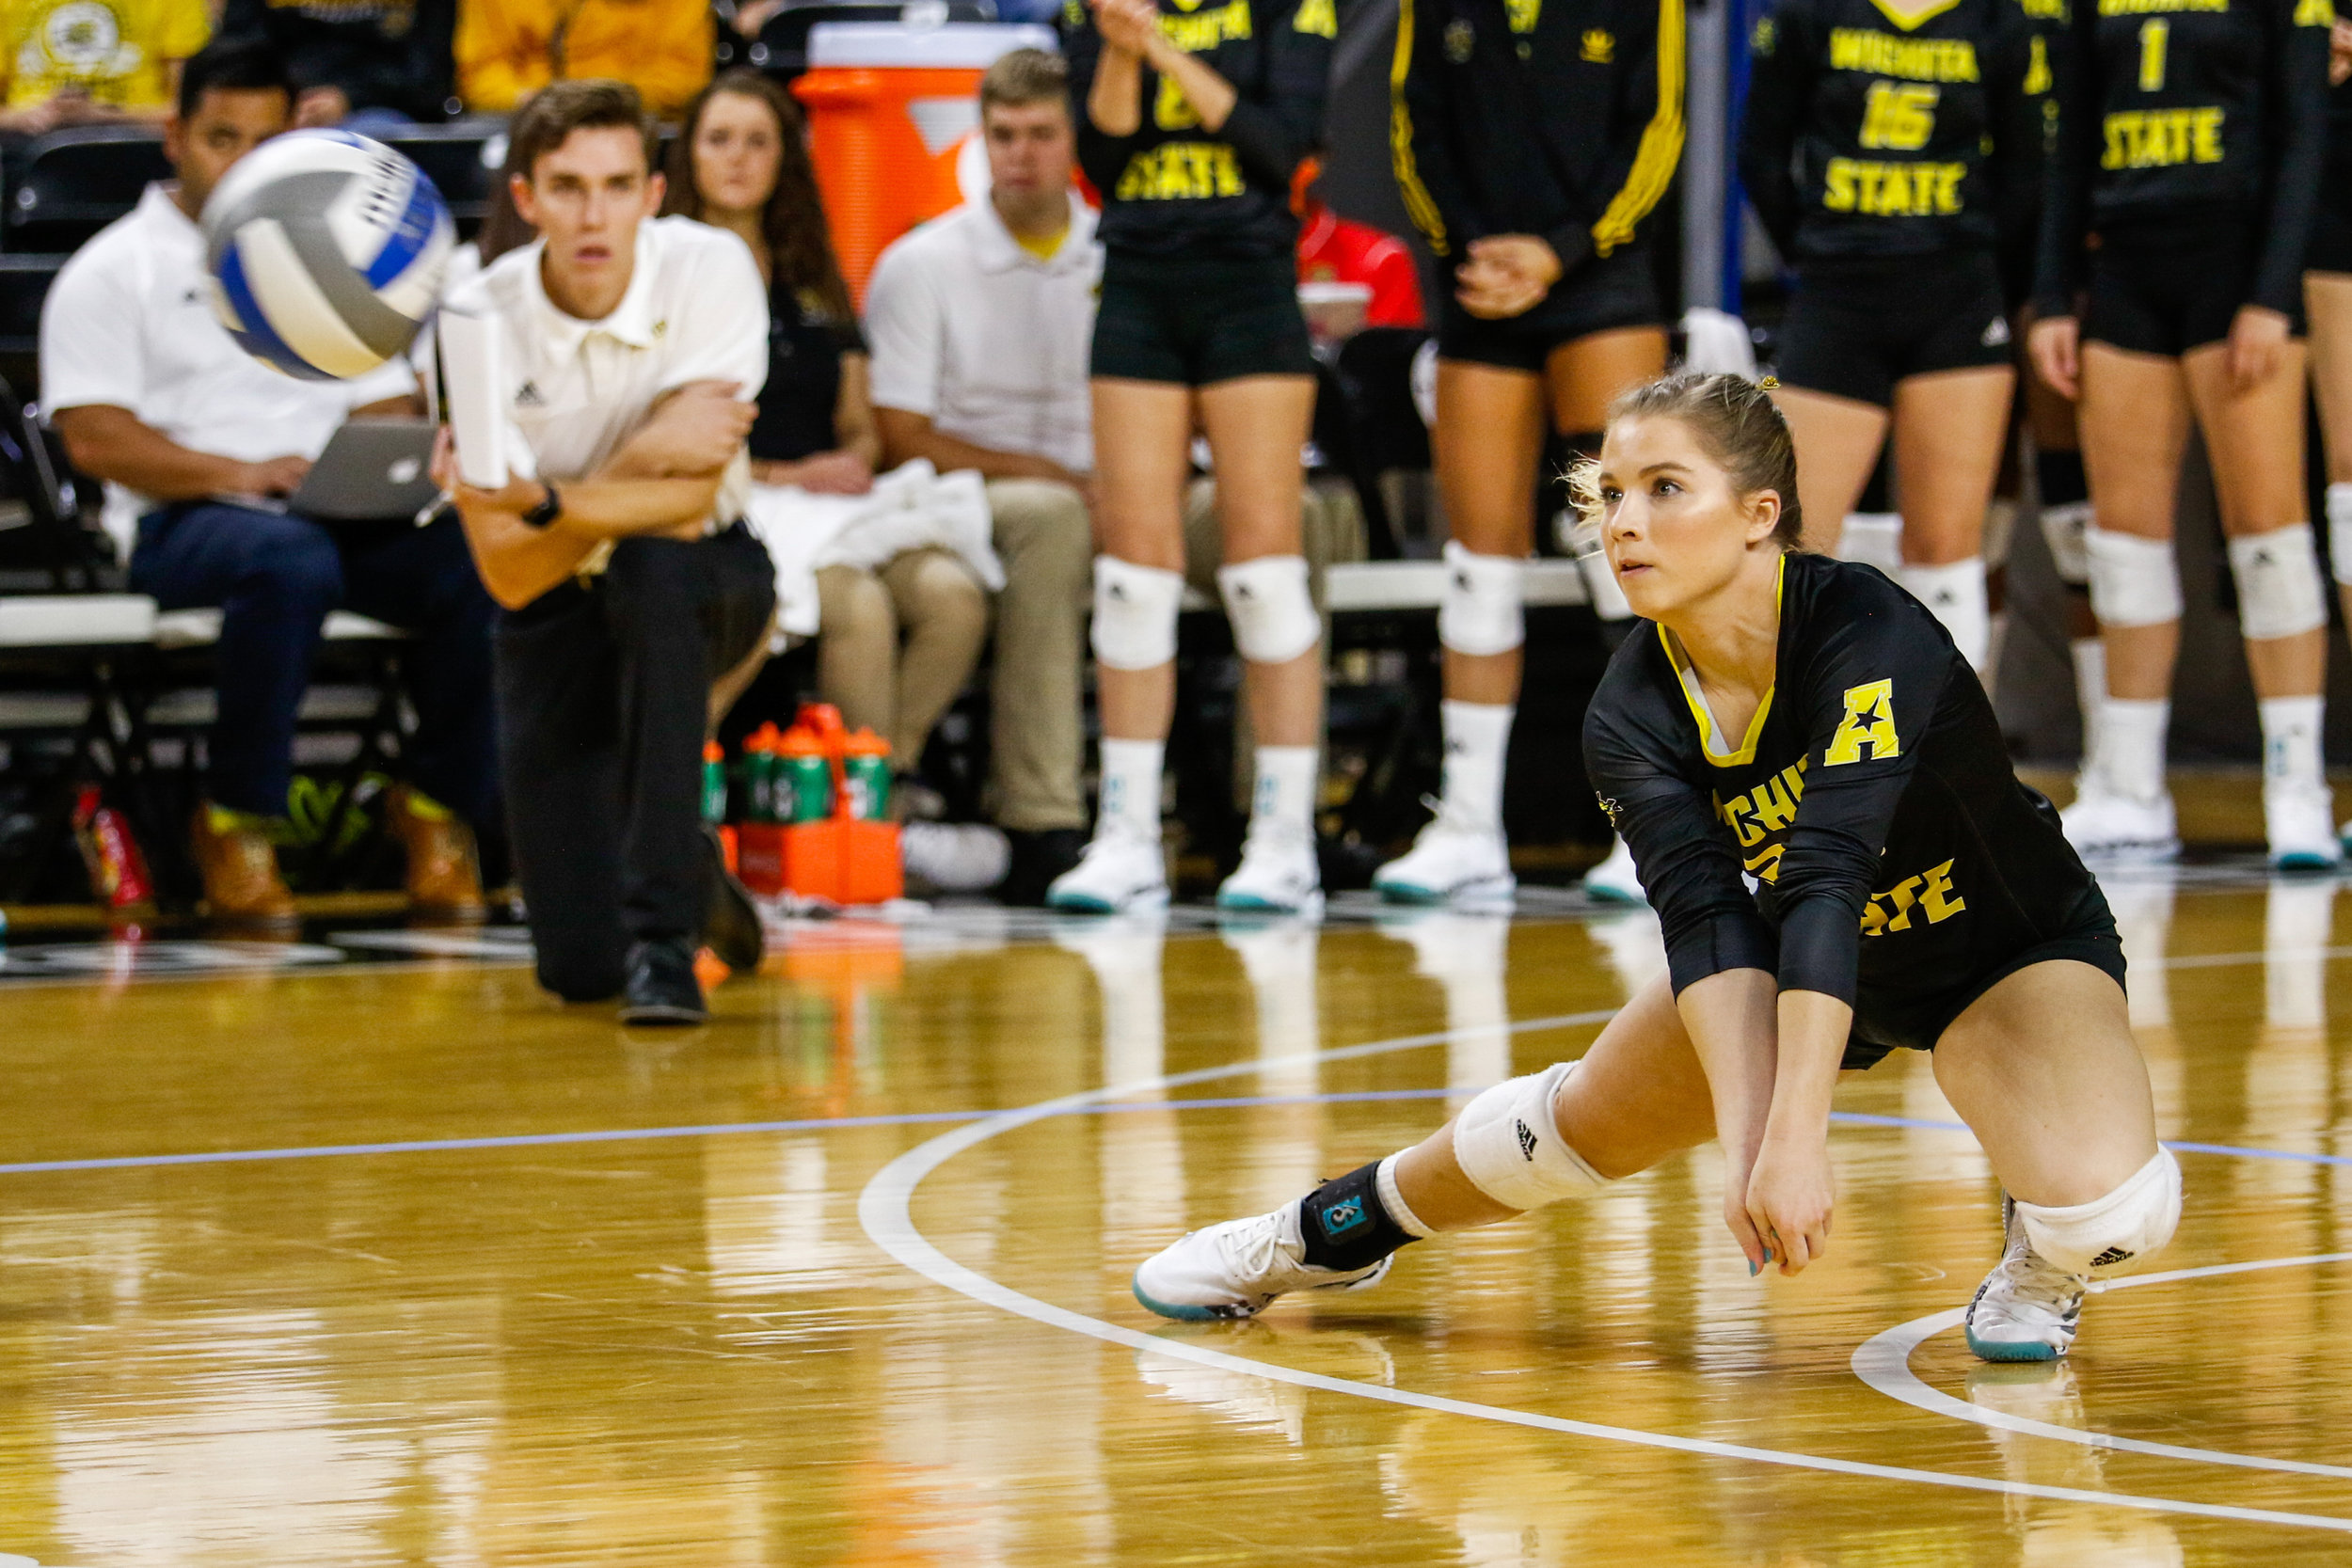 Wichita State's Hanna Shelton gets low for a ball during their game against UCF in Charles Koch Arena on October 1, 2017.